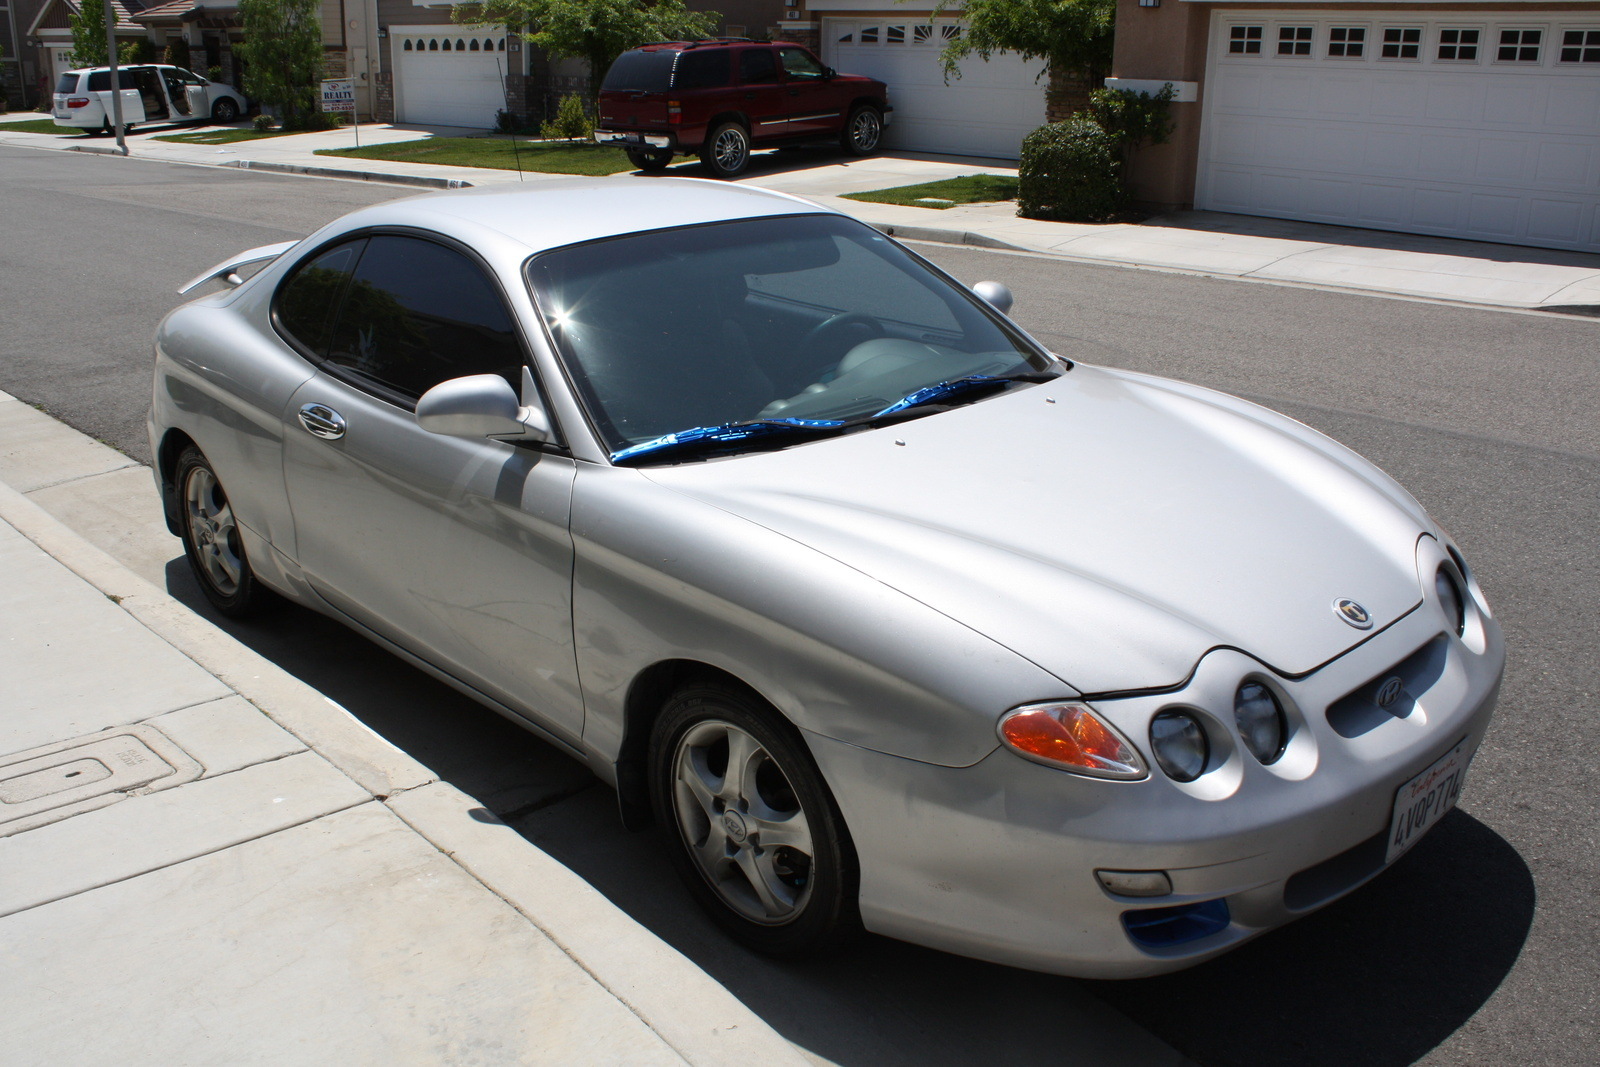 Picture of 2001 Hyundai Tiburon